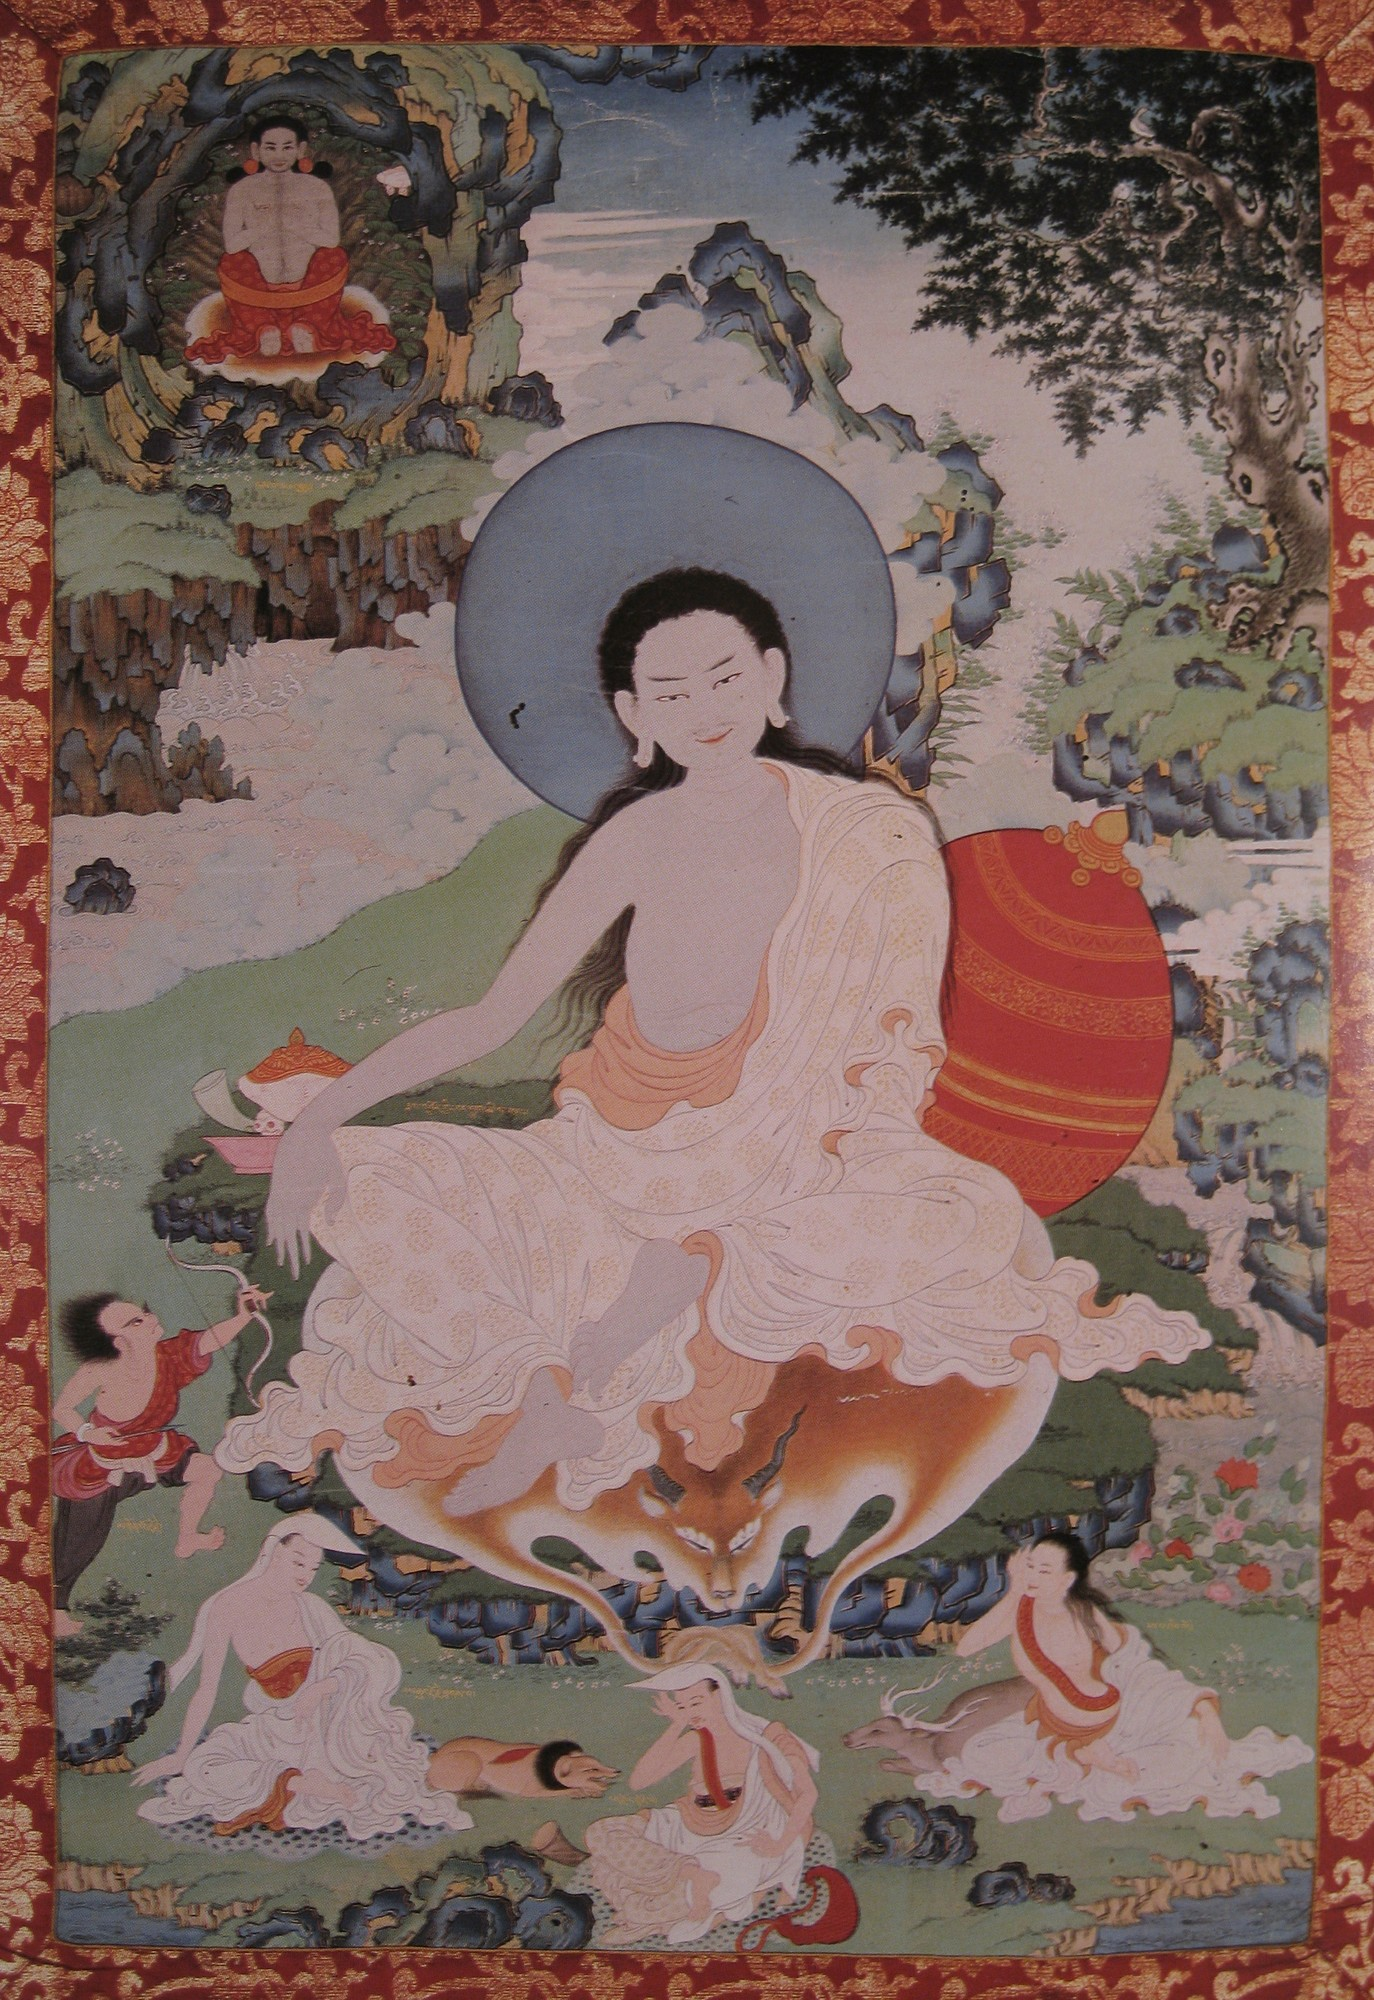 Milarepa. Image credit: himalayanart.org. Click on image to enlarge.